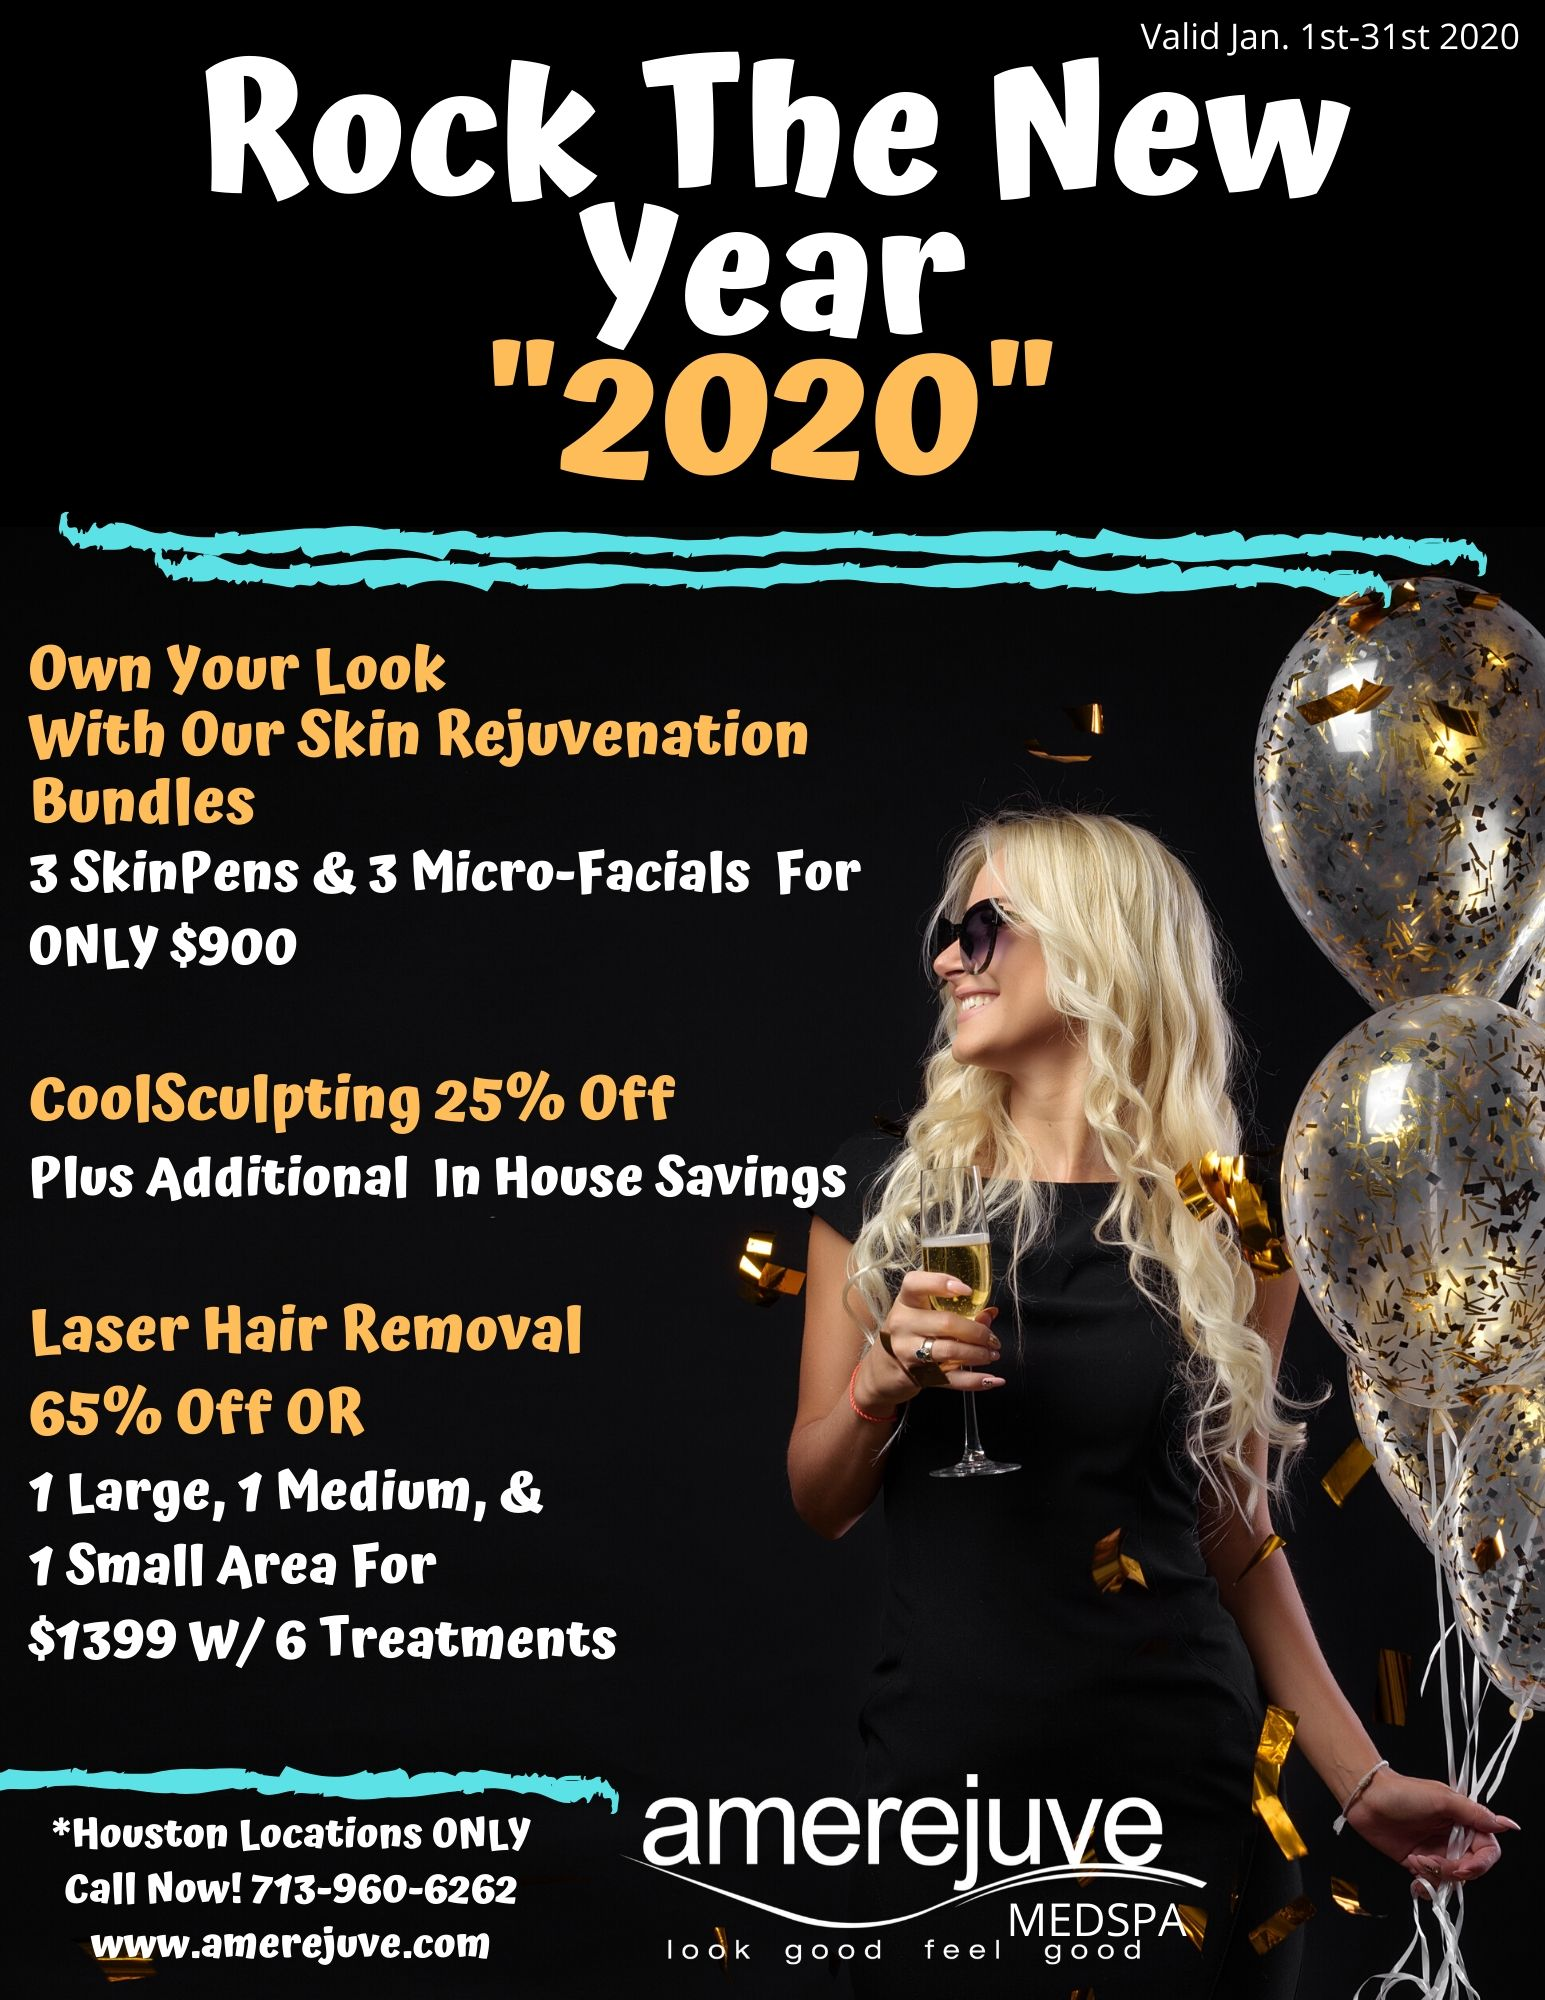 Medspa deals Houston, TX